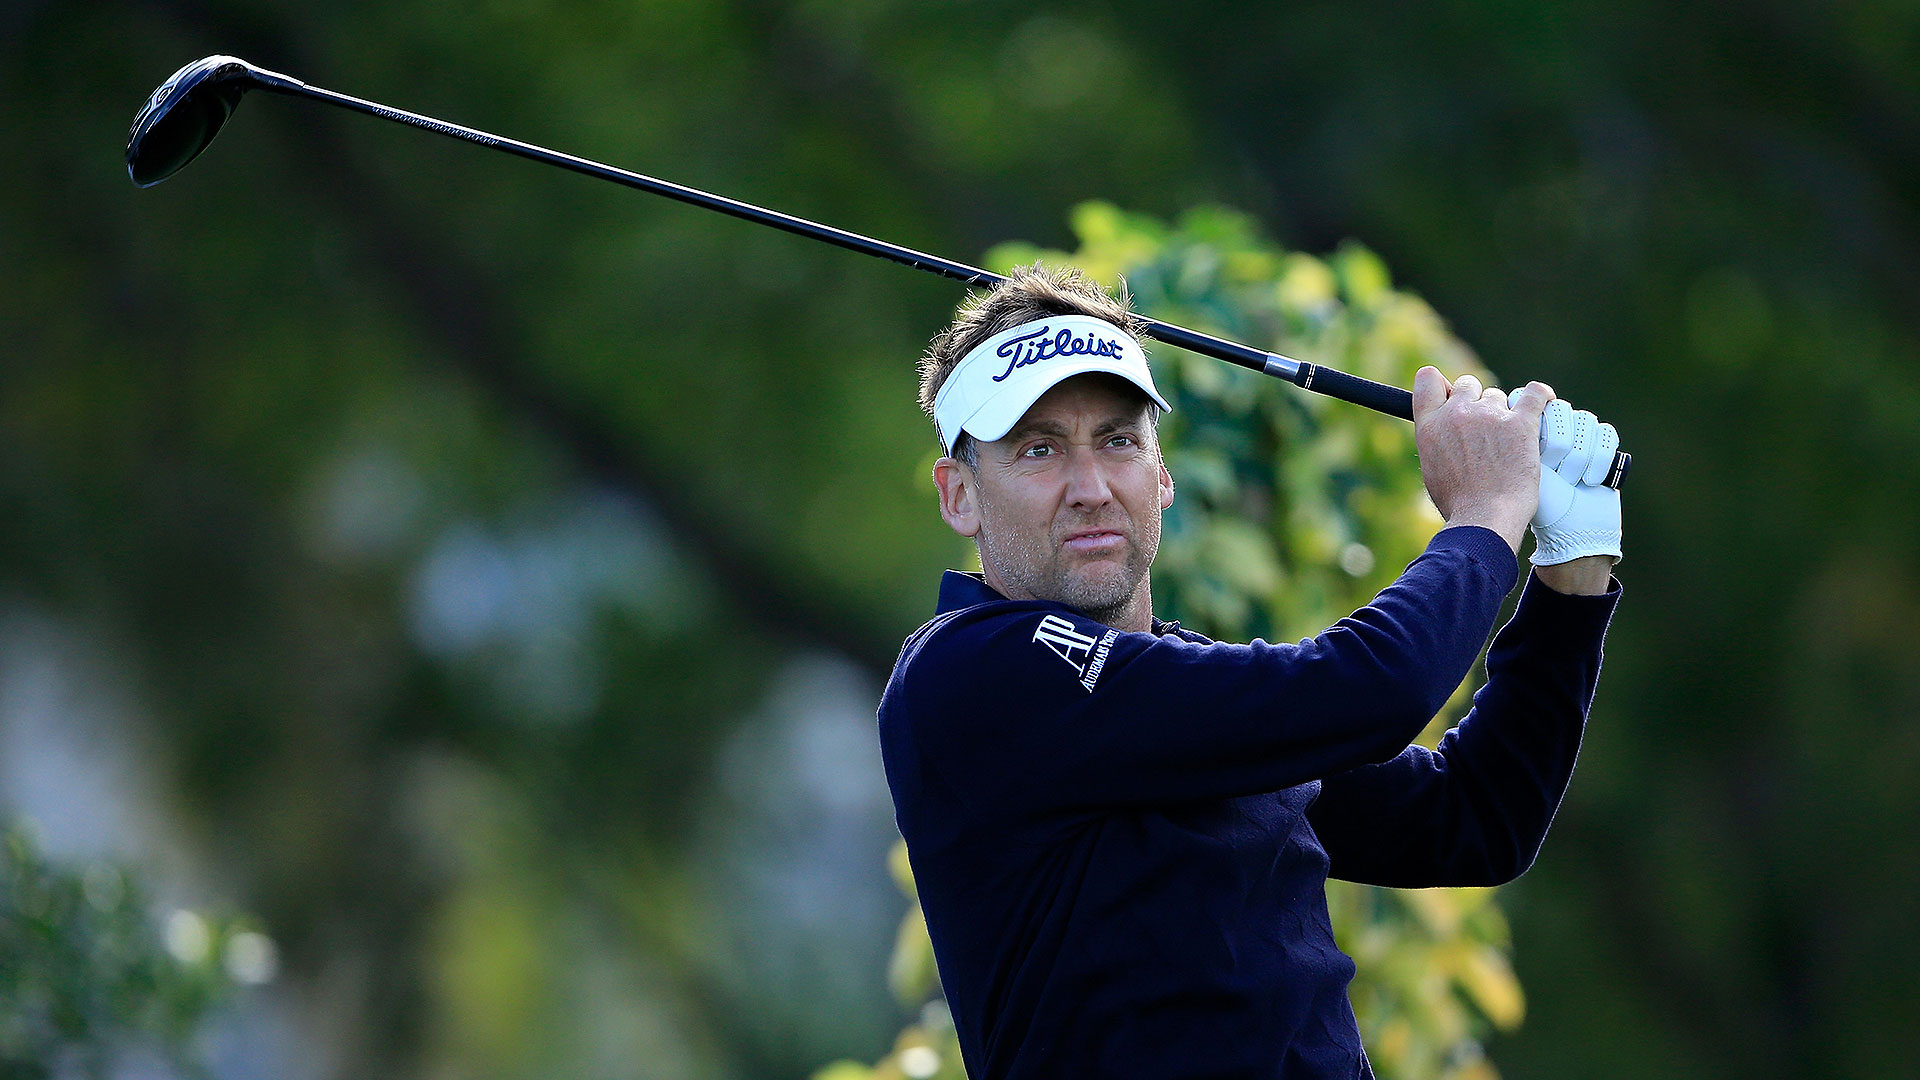 Honda Sioux Falls >> Ian Poulter heckler gets fired from job | Golf Channel